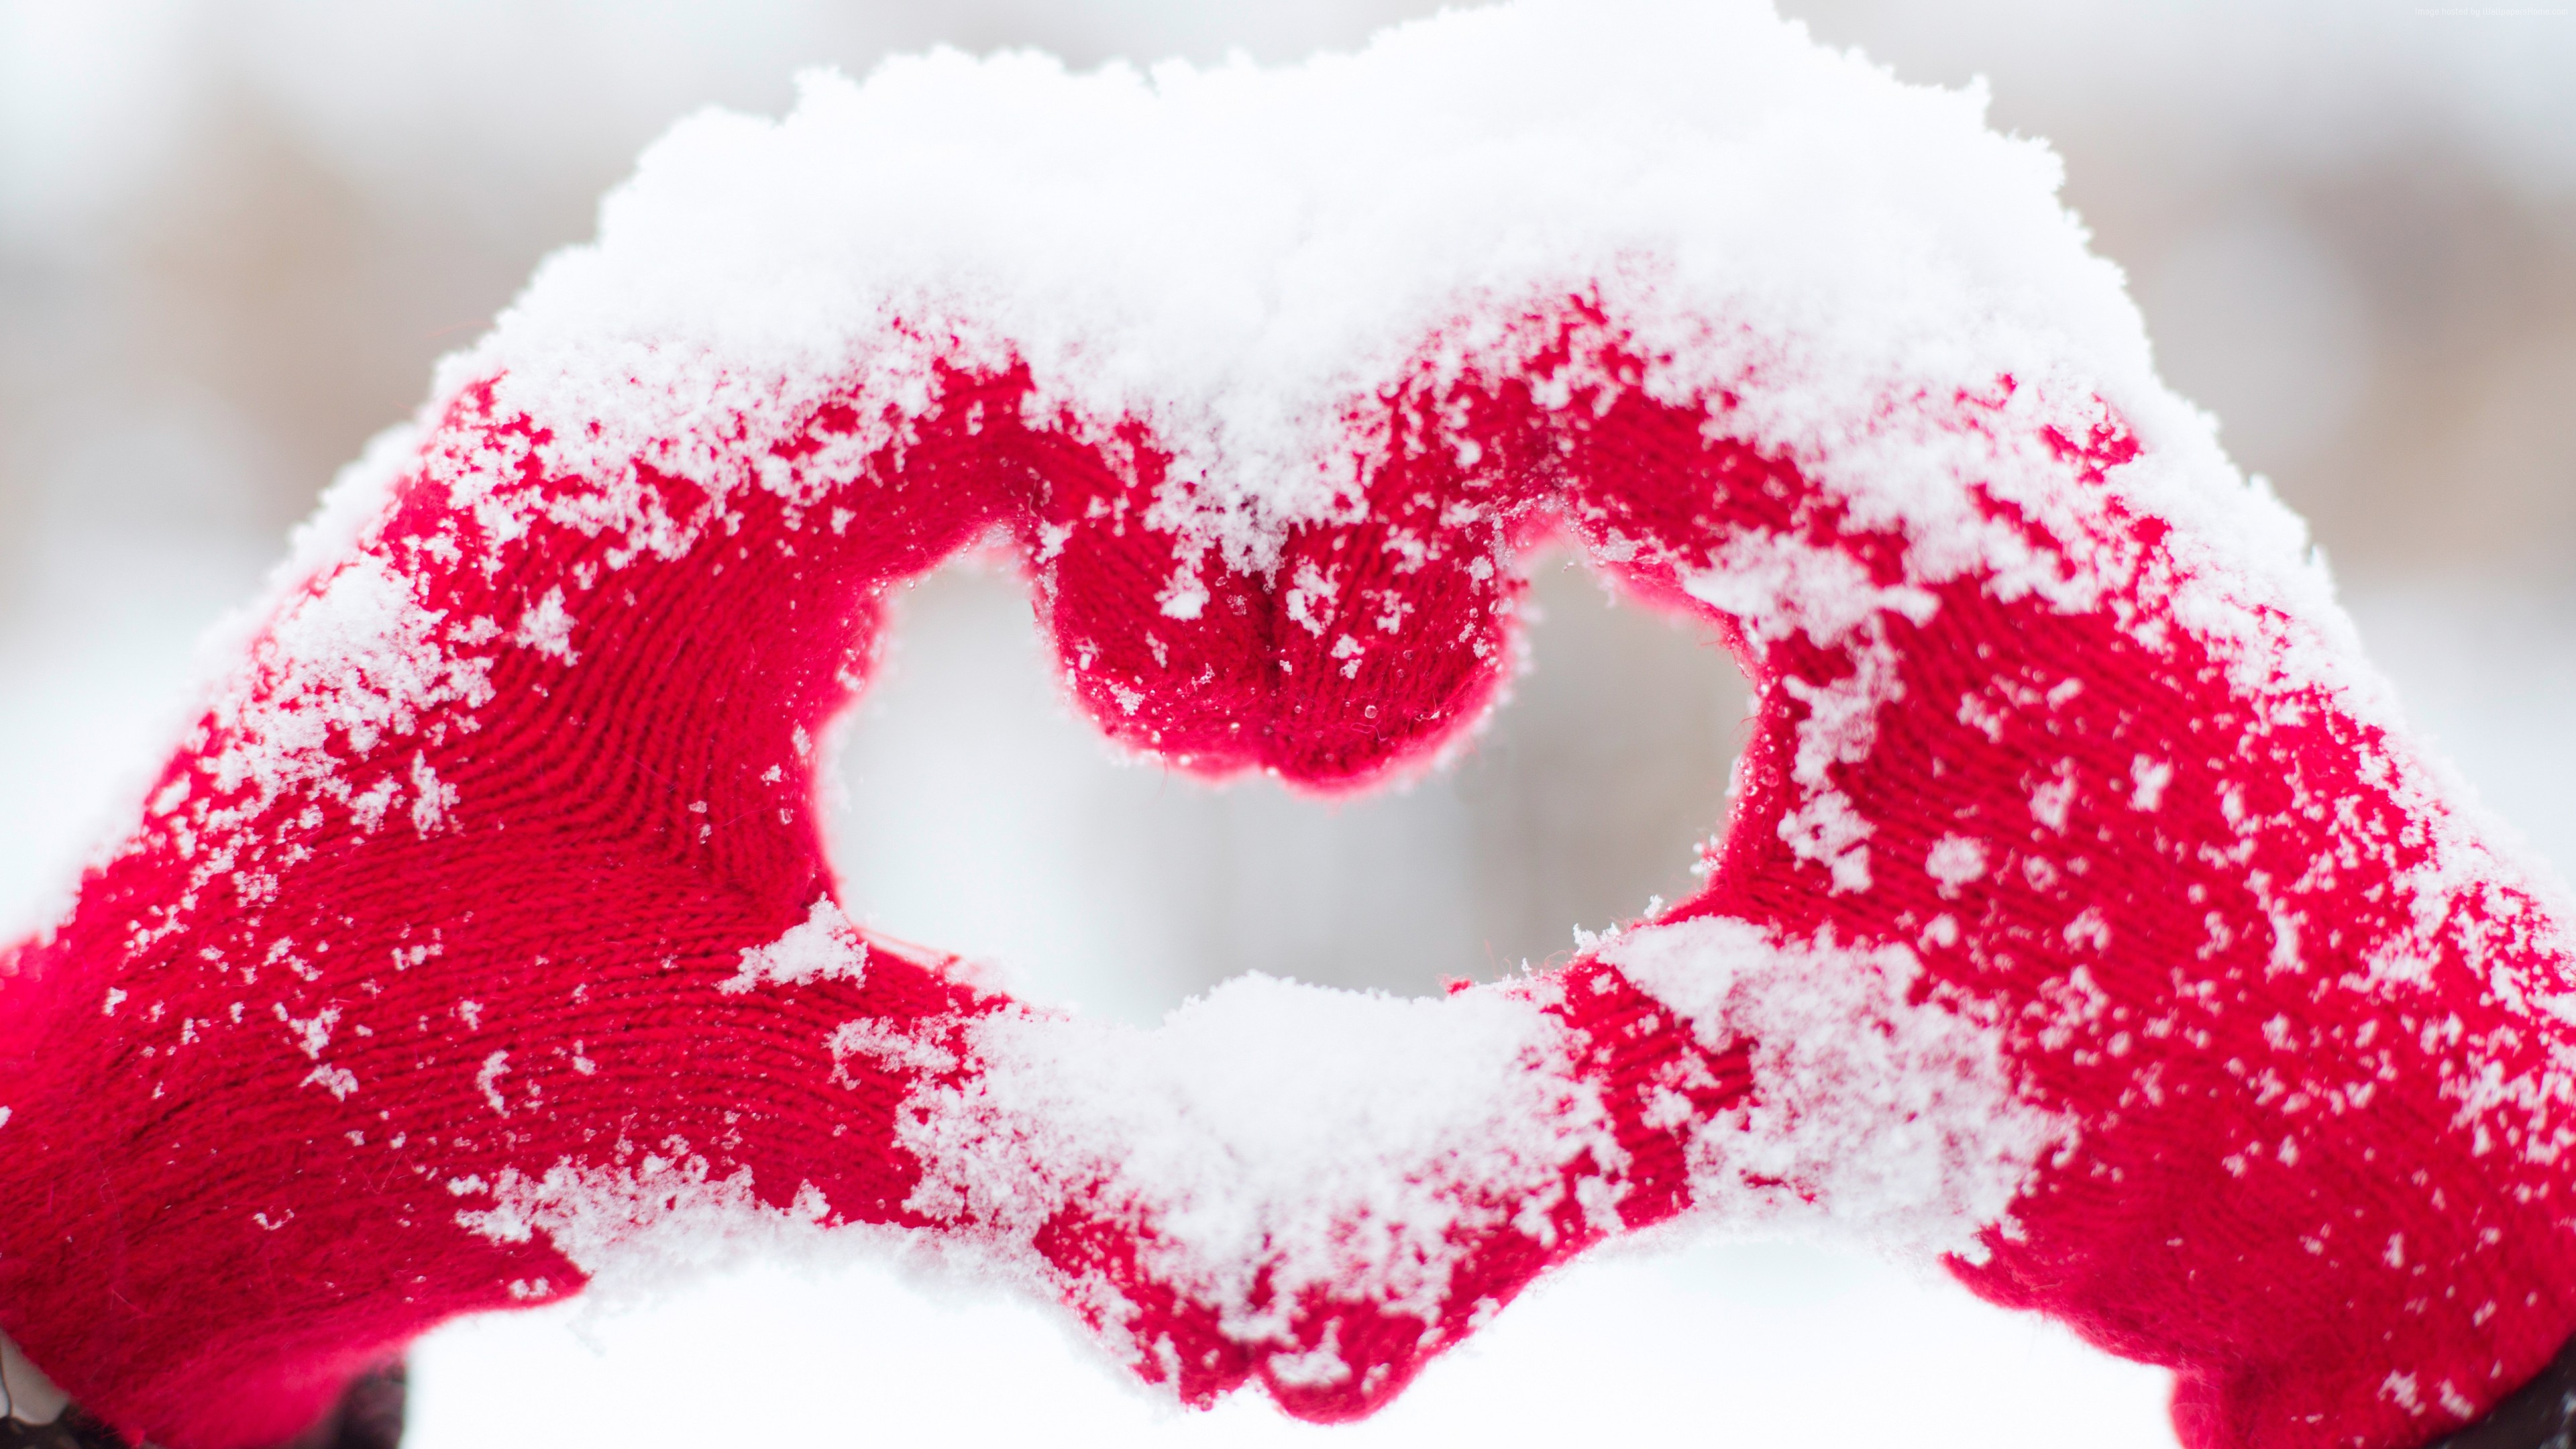 Stock Images love image, heart, snow, 4k, Stock Images ...